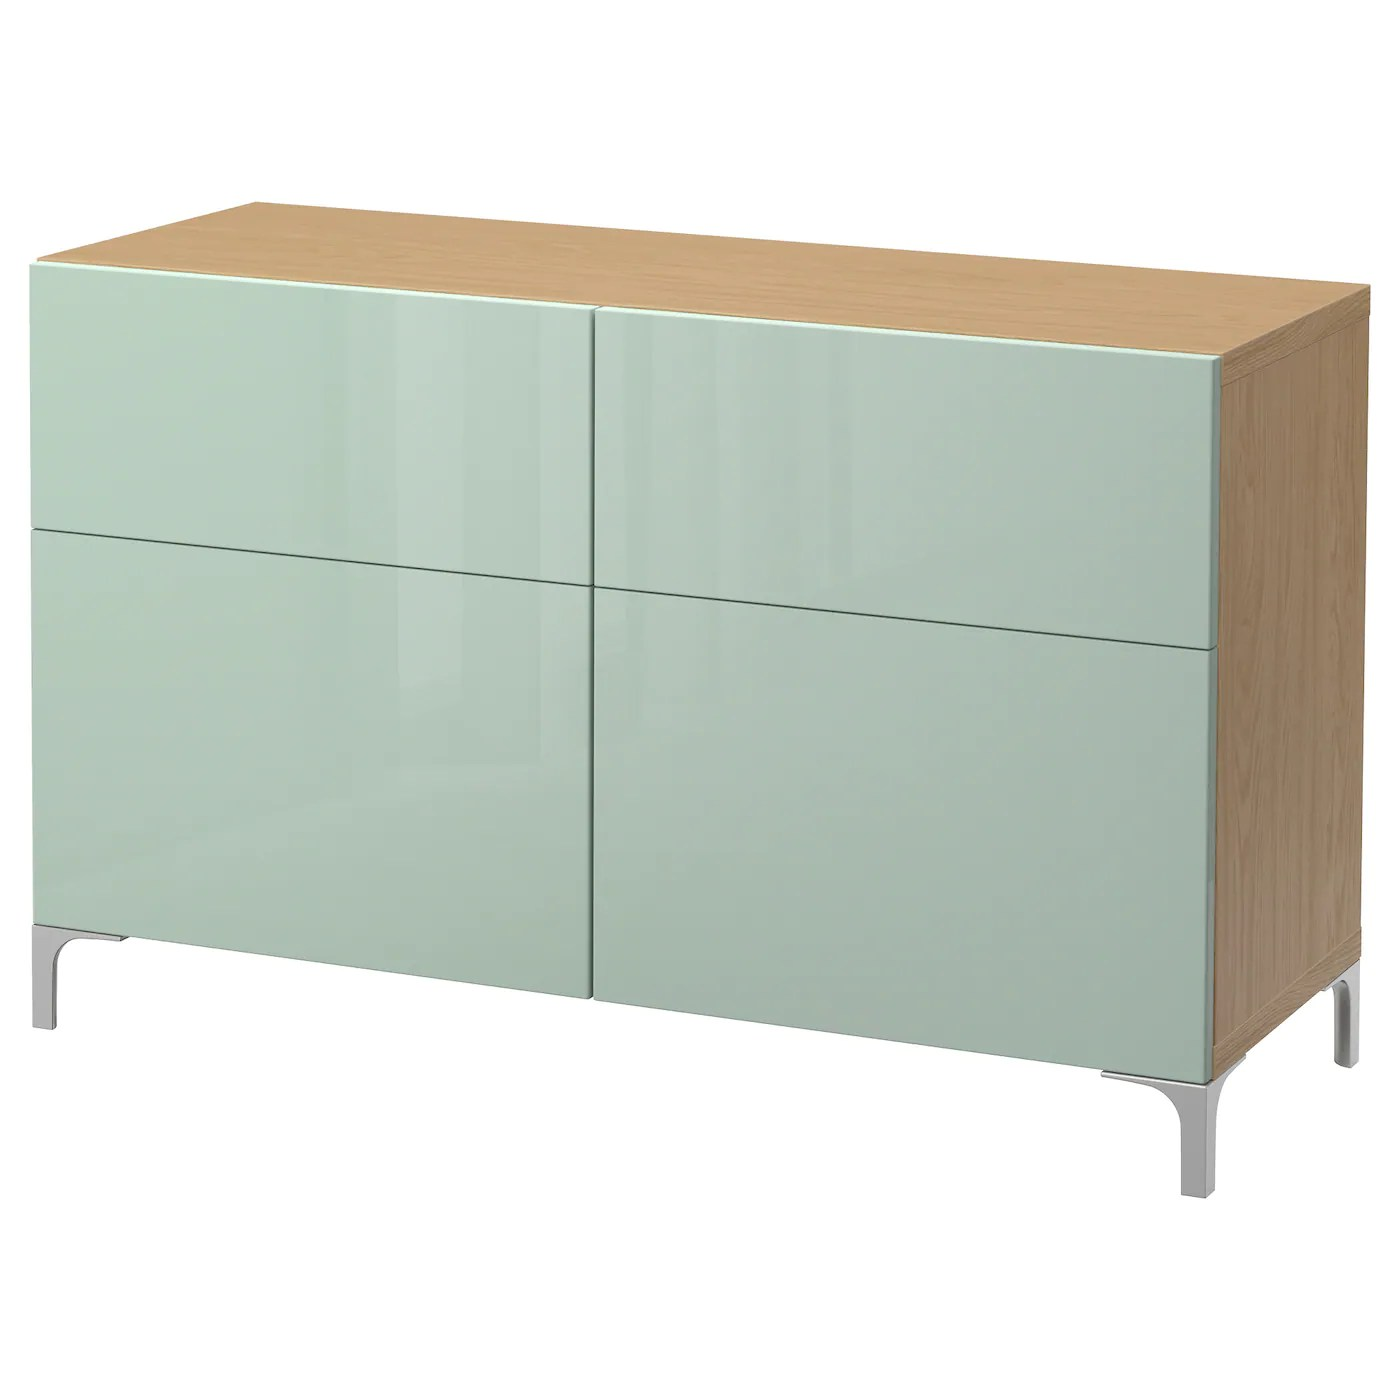 Sideboard 250 Cm Hall Tables Ikea Ireland Dublin